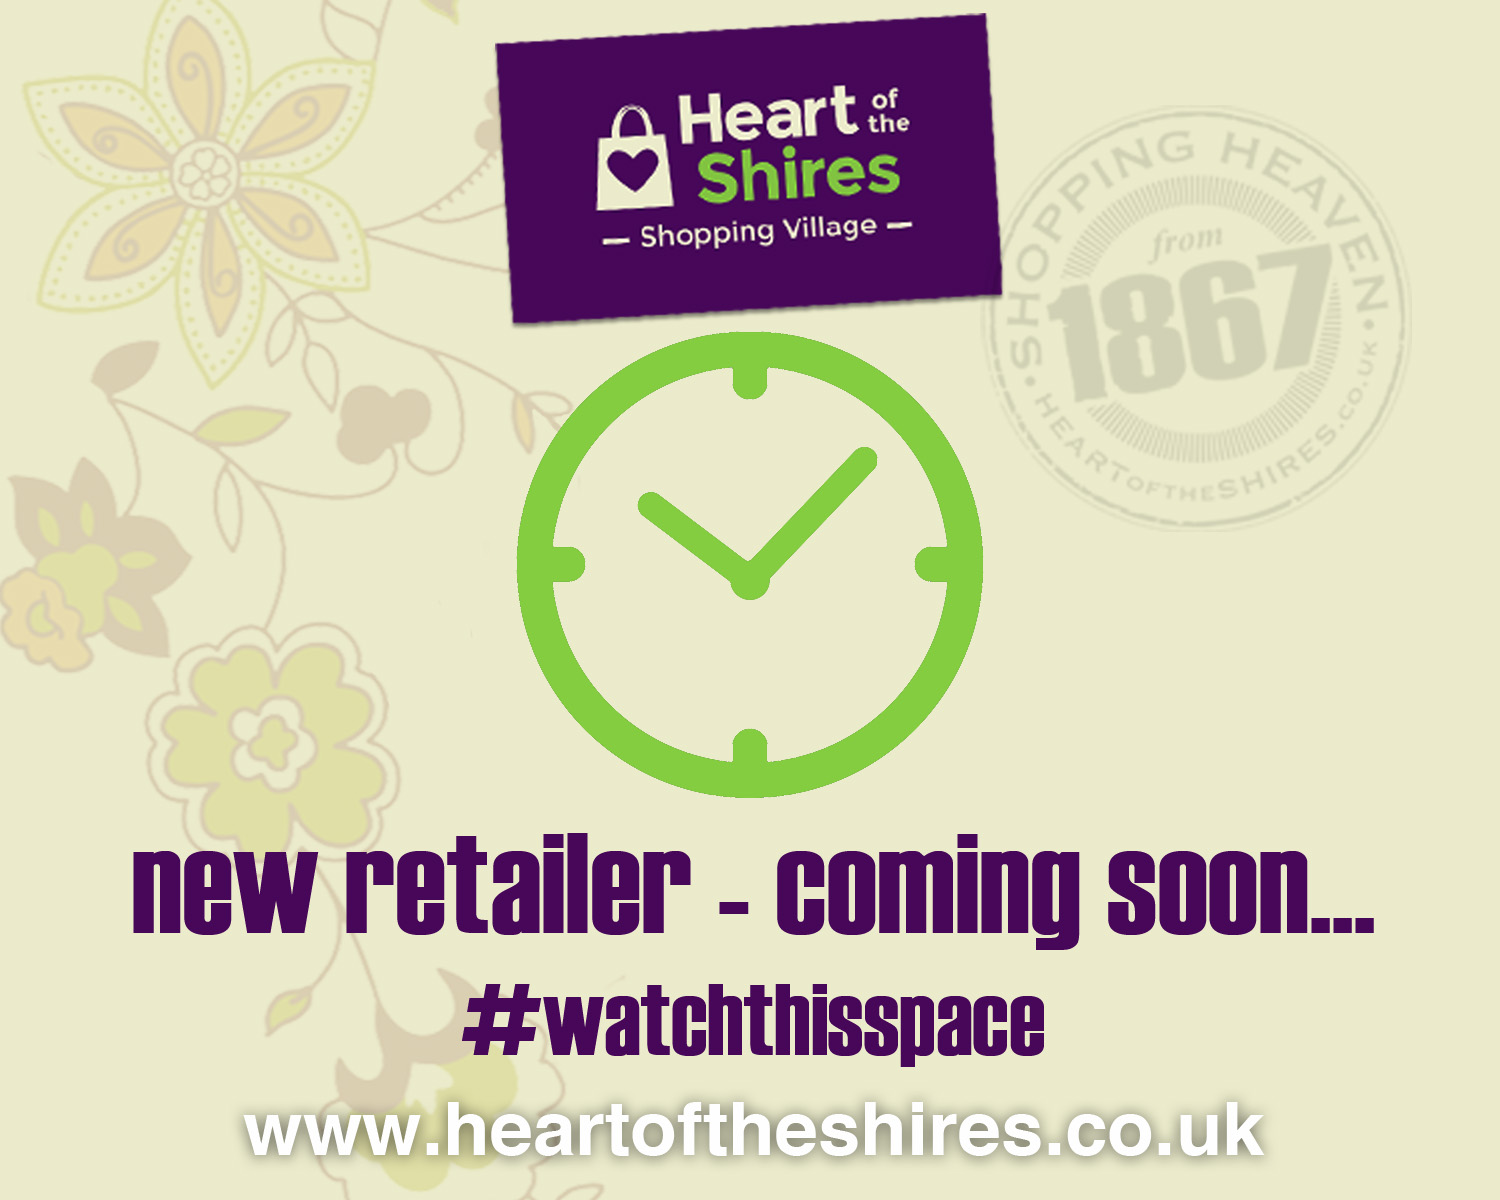 new retailer Heart of the Shires